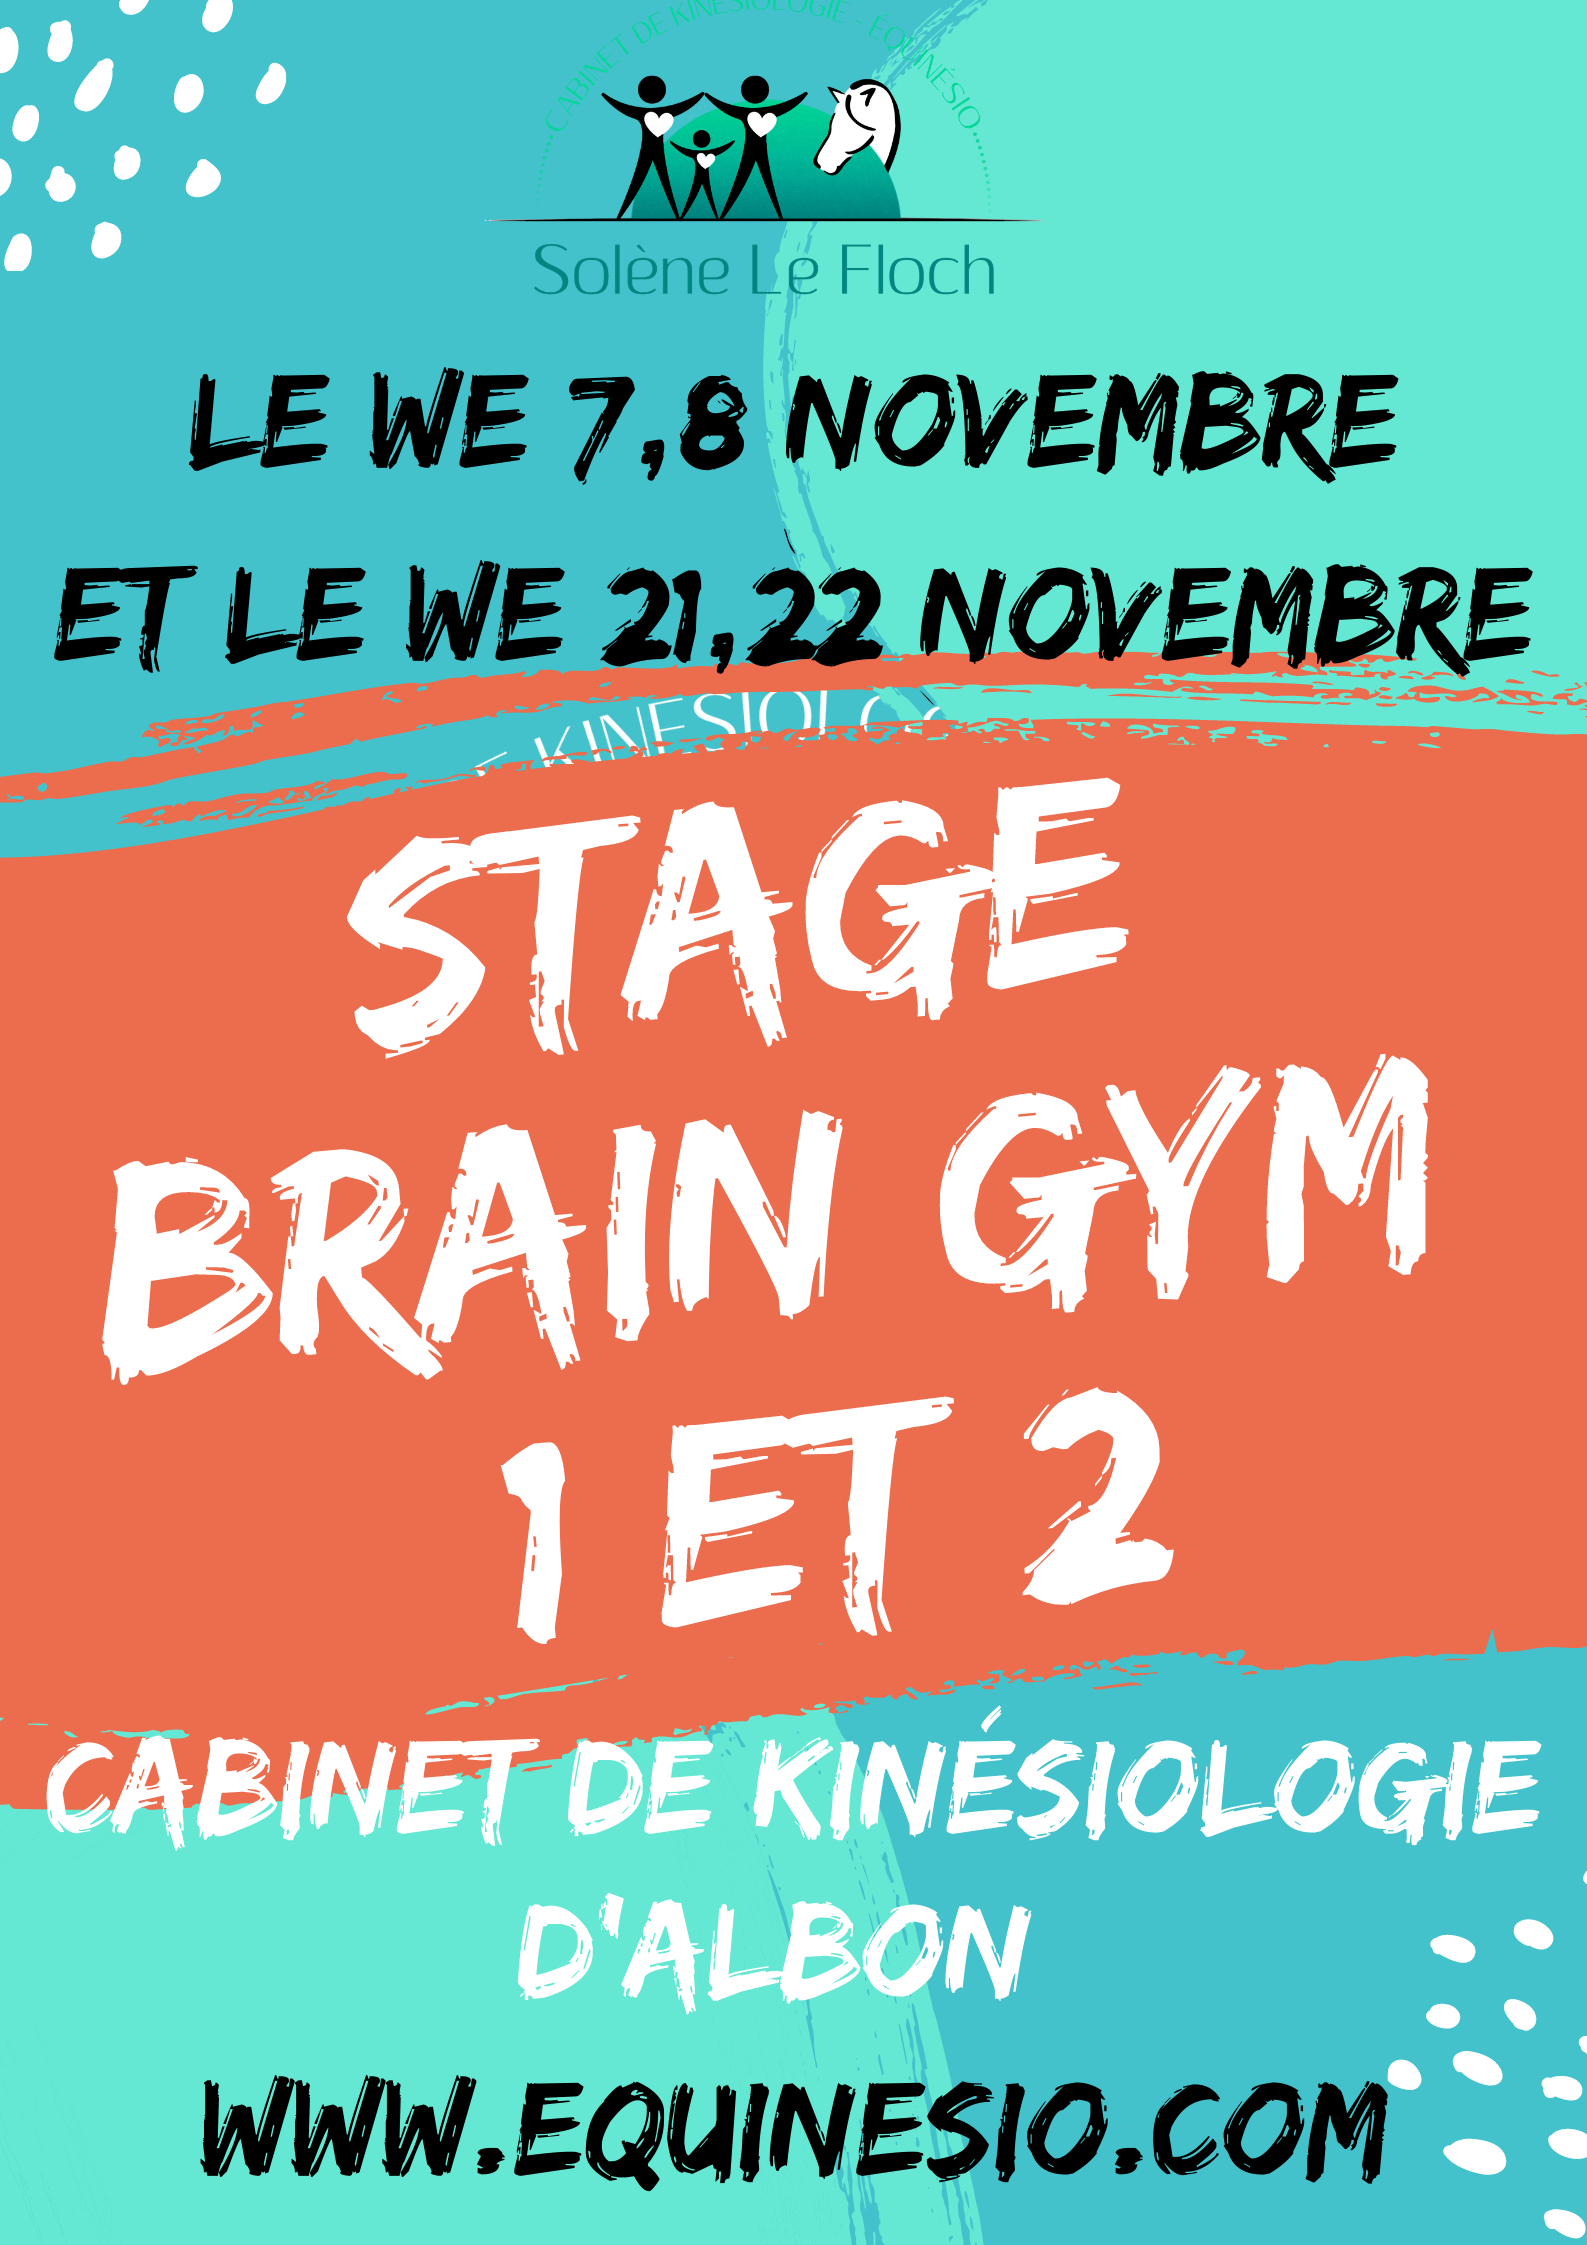 STAGE BRAIN GYM 1&2 (2)